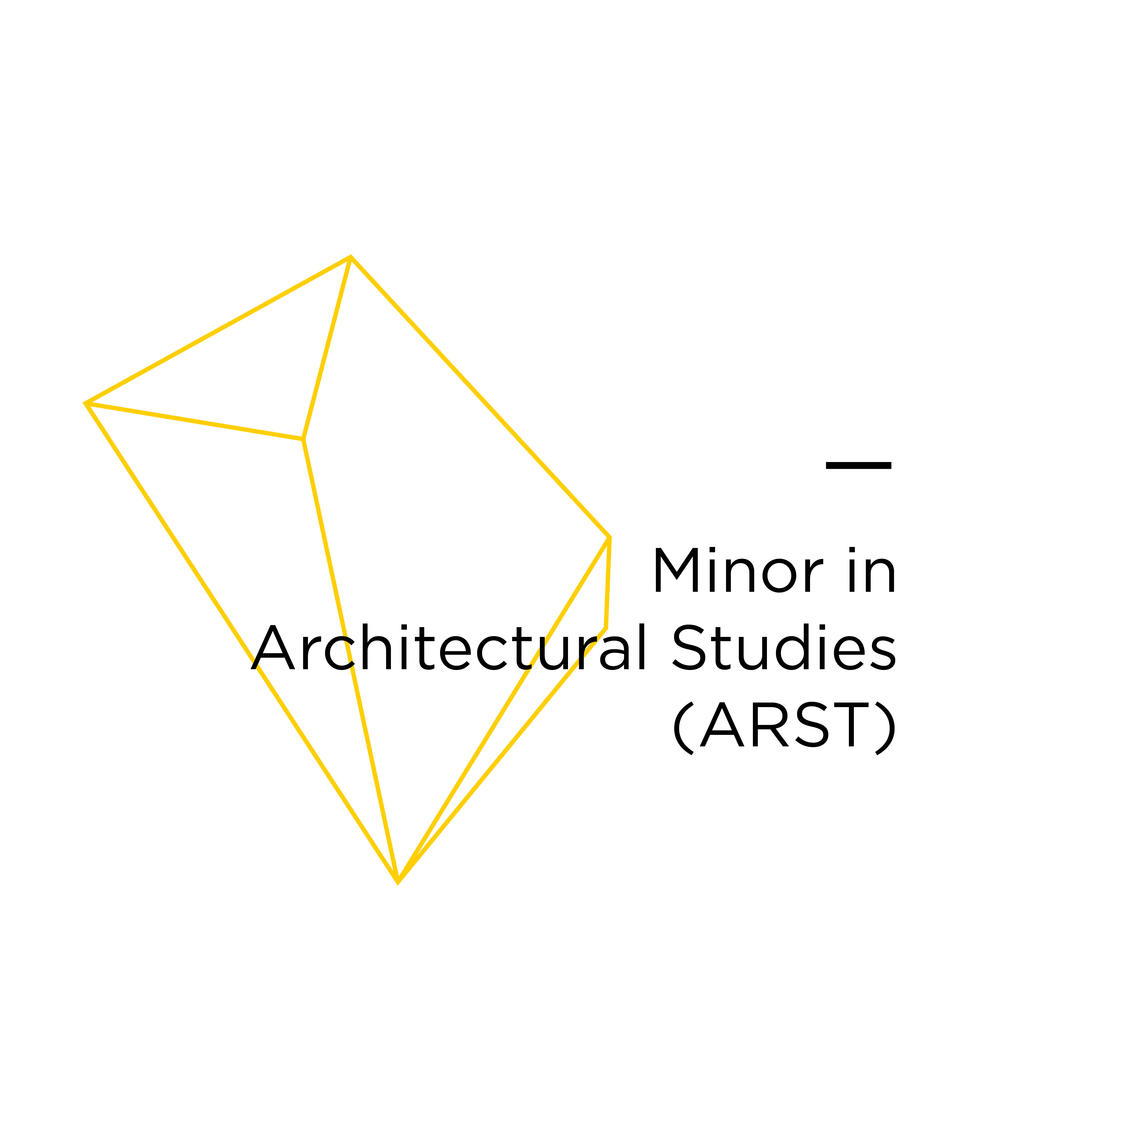 Minor in Architectural Studies (ARST)